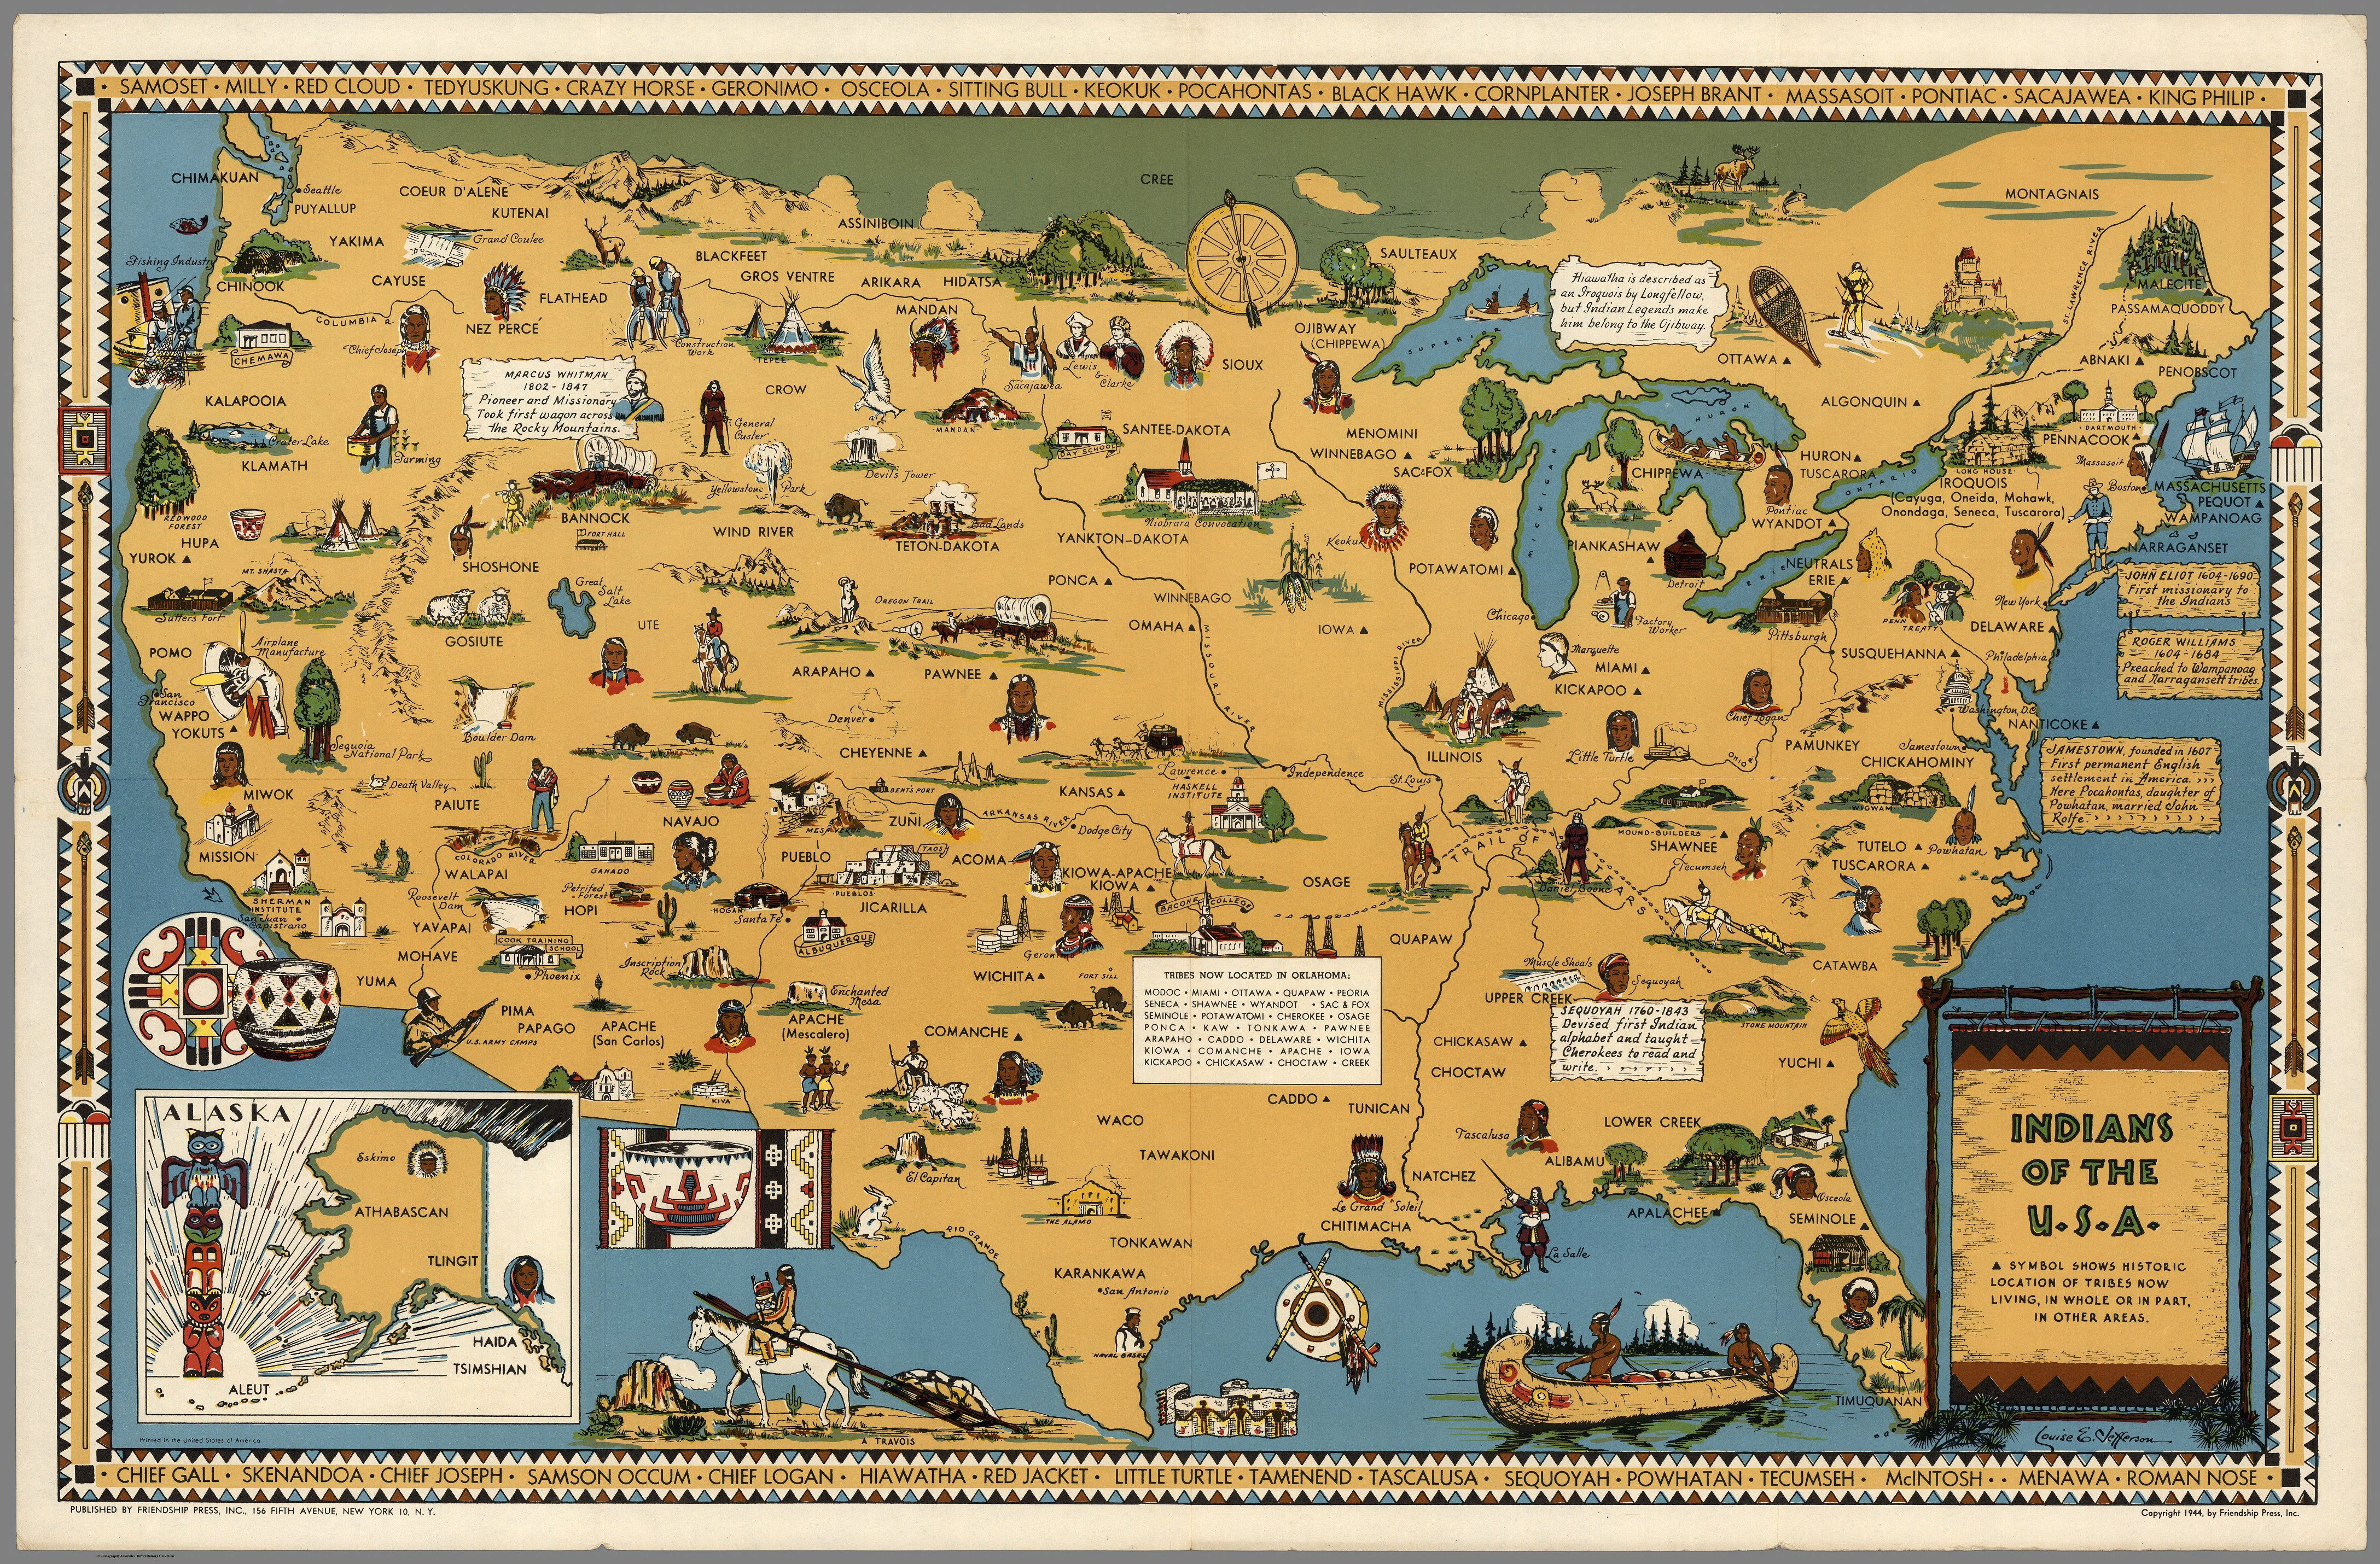 Indians Of The U S A Map